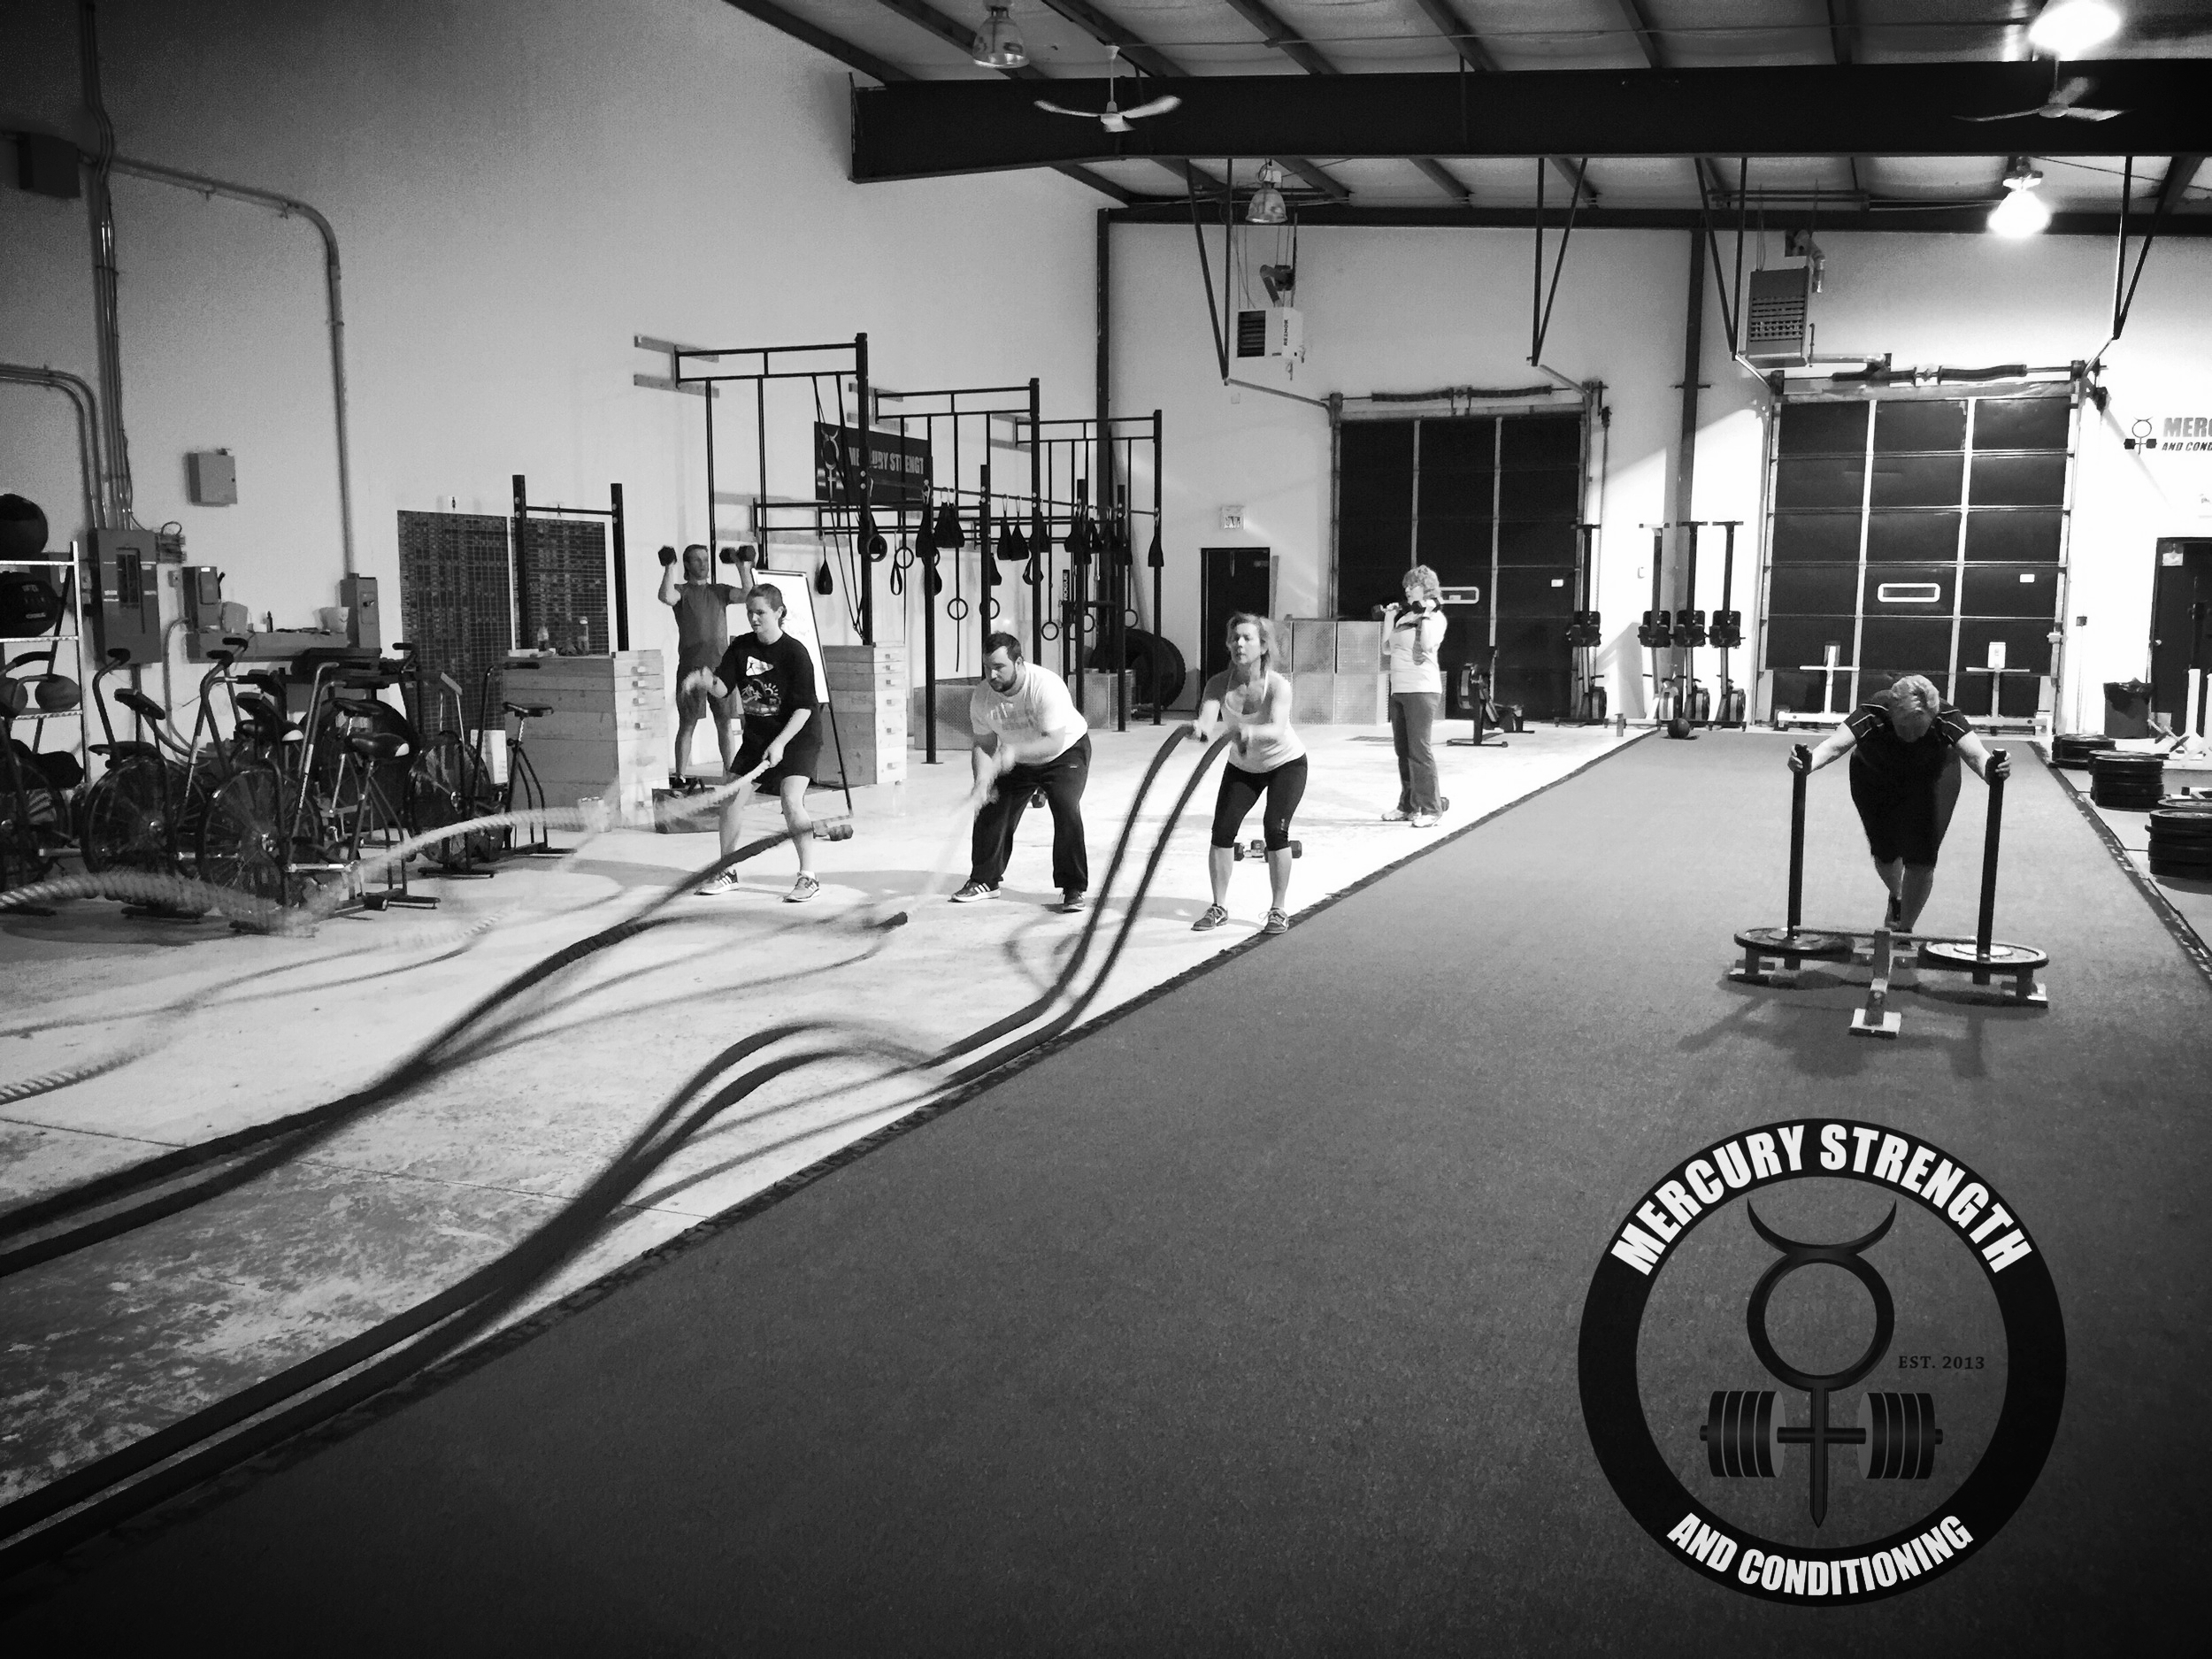 06:30 class burning out the shoulders. What do you do if you have a shoulder injury? You do Tabata with the prowler.